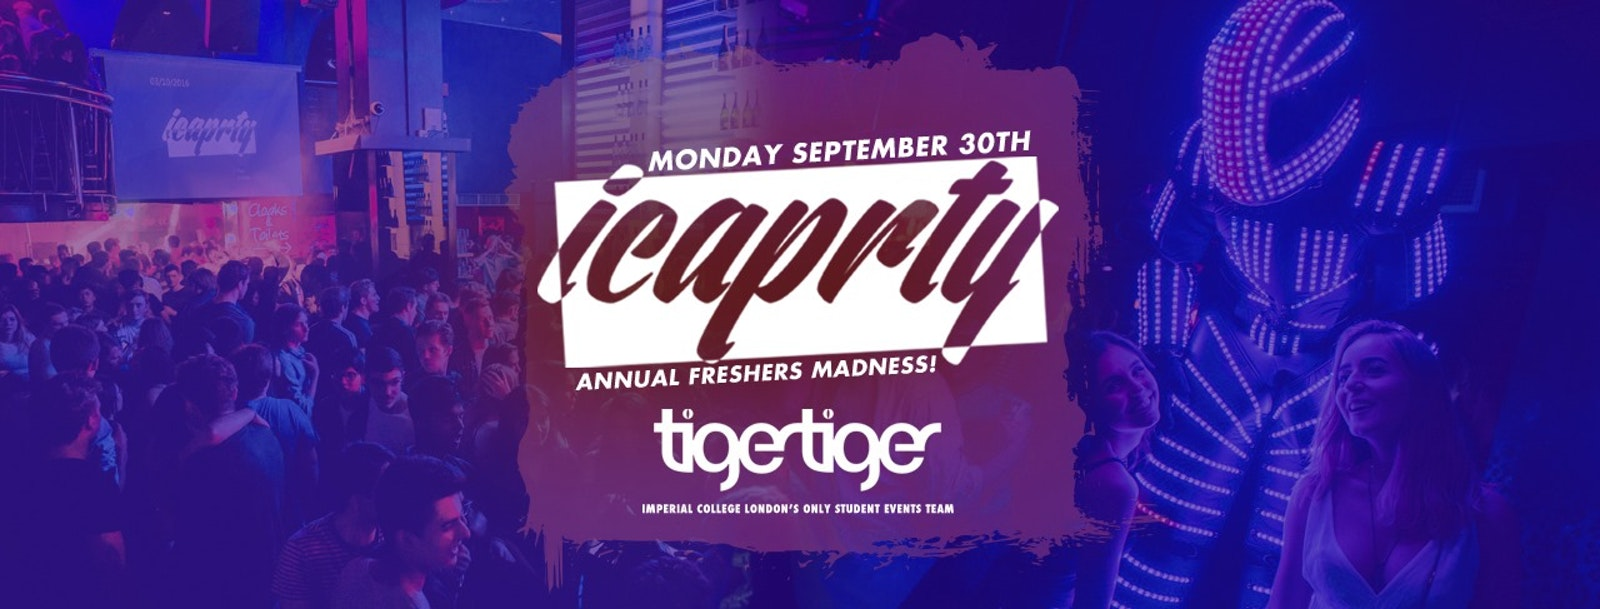 IC a PRTY! The Annual Freshers Madness 2019